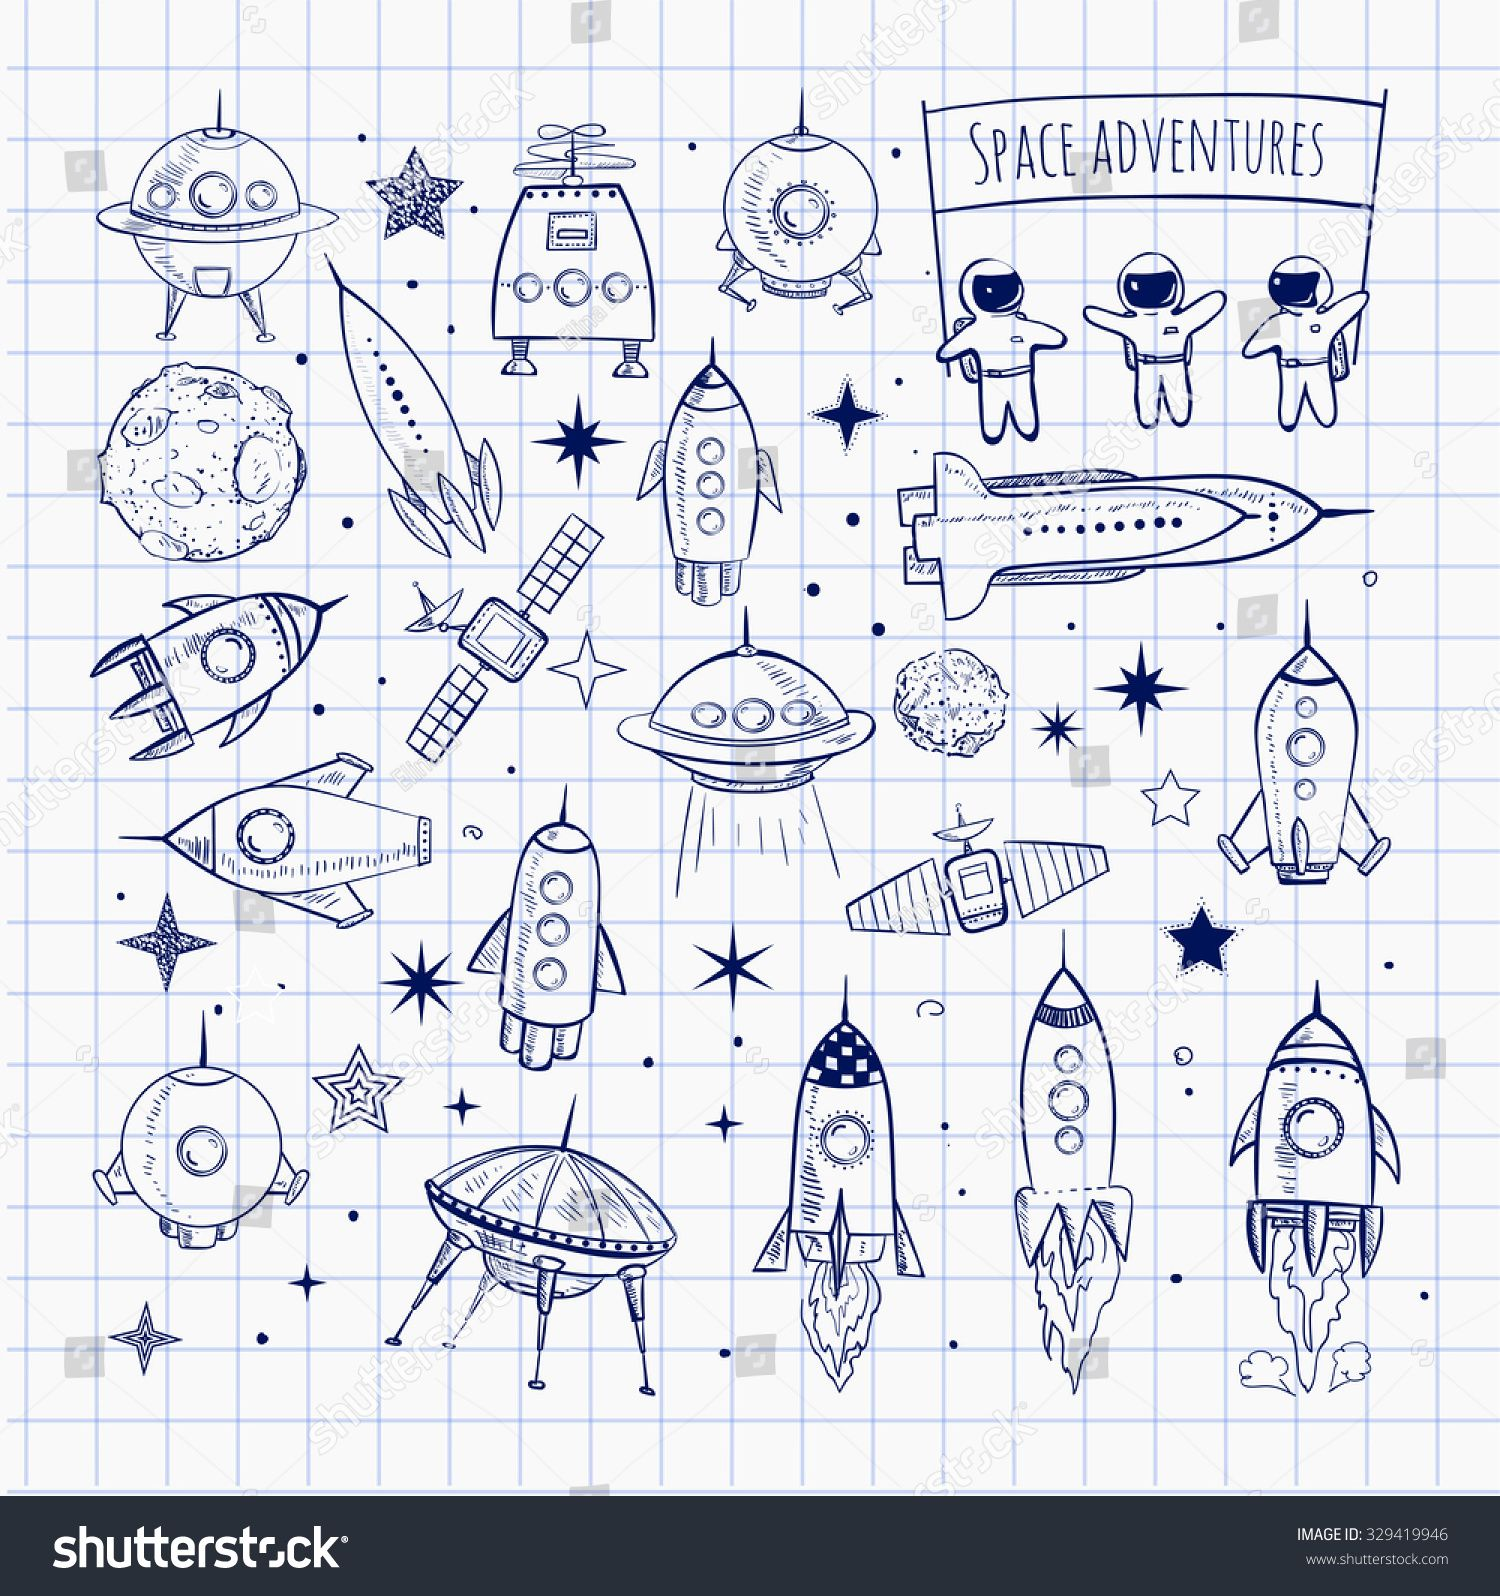 Collection Of Sketchy Space Objects Isolated On Squared